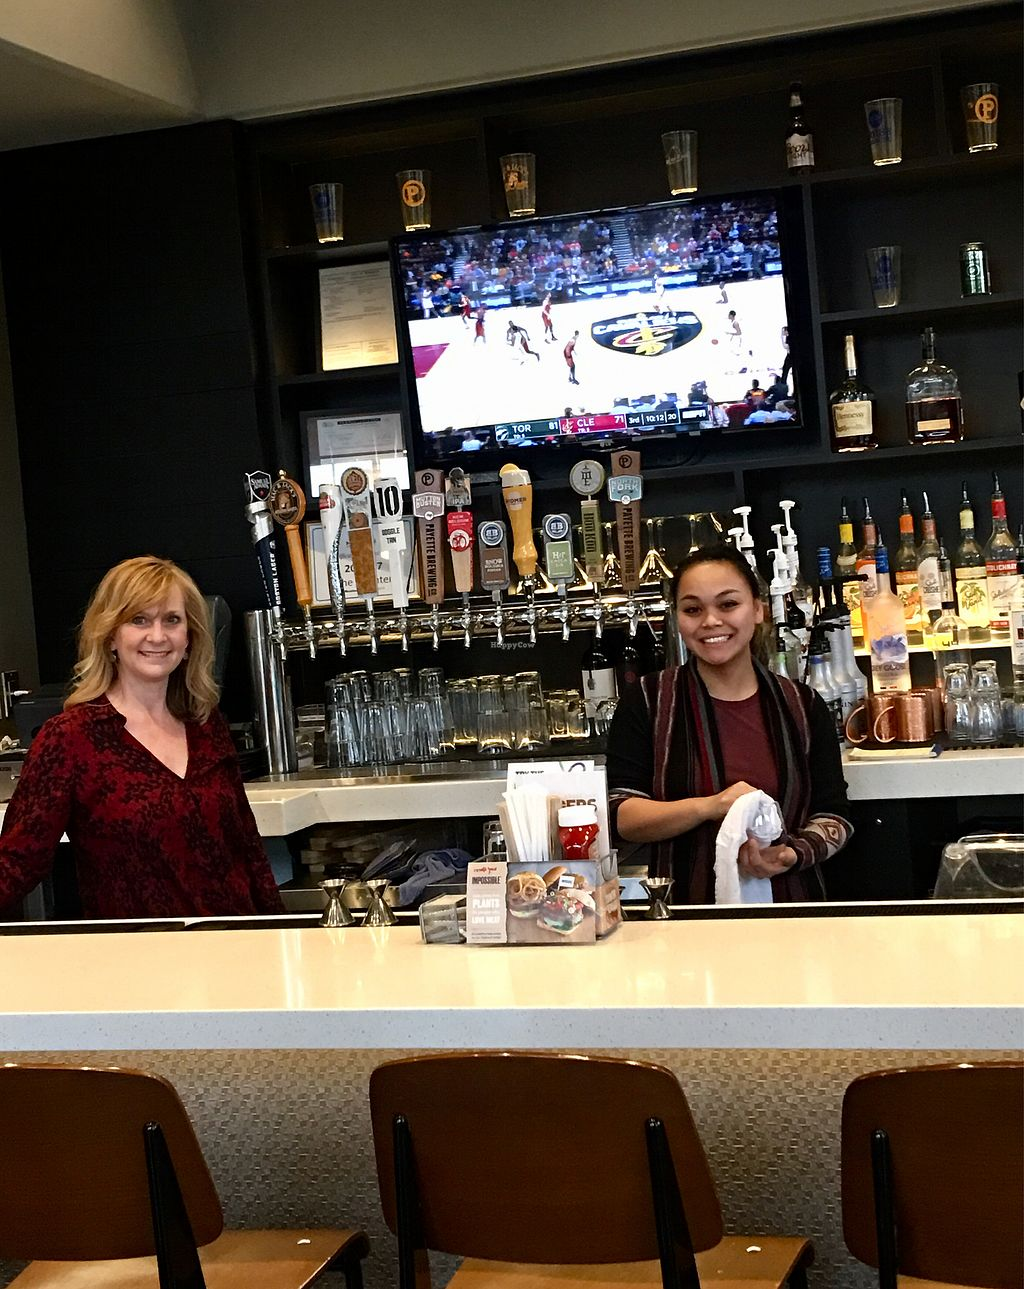 """Photo of The Counter  by <a href=""""/members/profile/ChereseTarter"""">ChereseTarter</a> <br/>Friendly Staff!  <br/> March 22, 2018  - <a href='/contact/abuse/image/109160/374137'>Report</a>"""